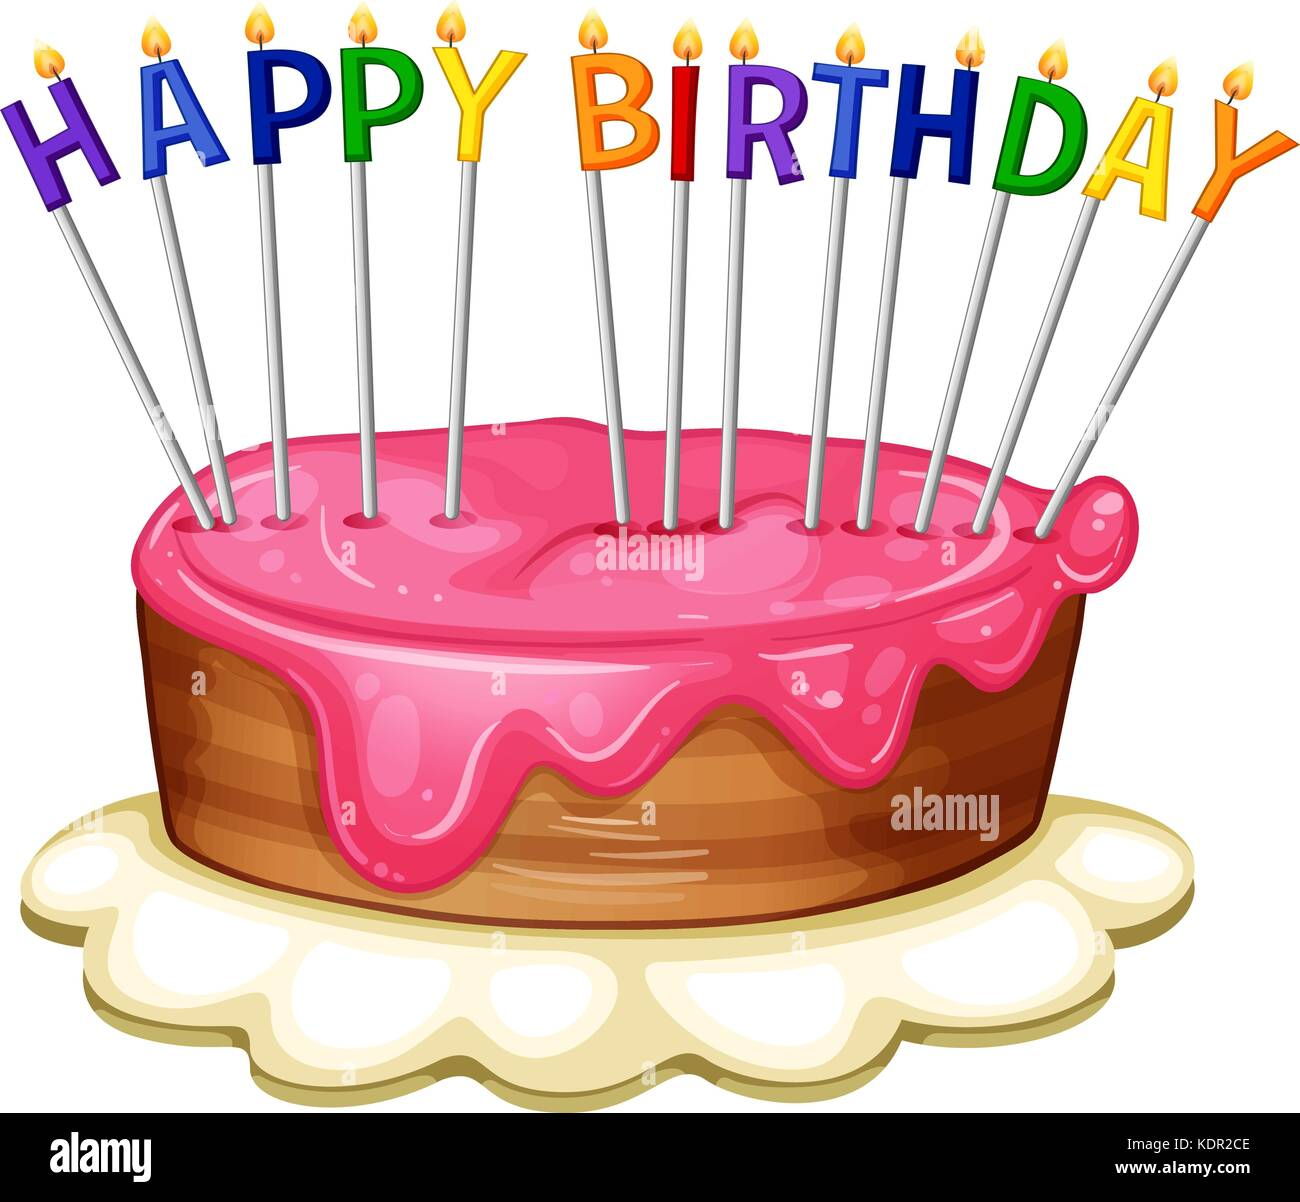 Happy Birthday Card Template With Pink Cake Illustration